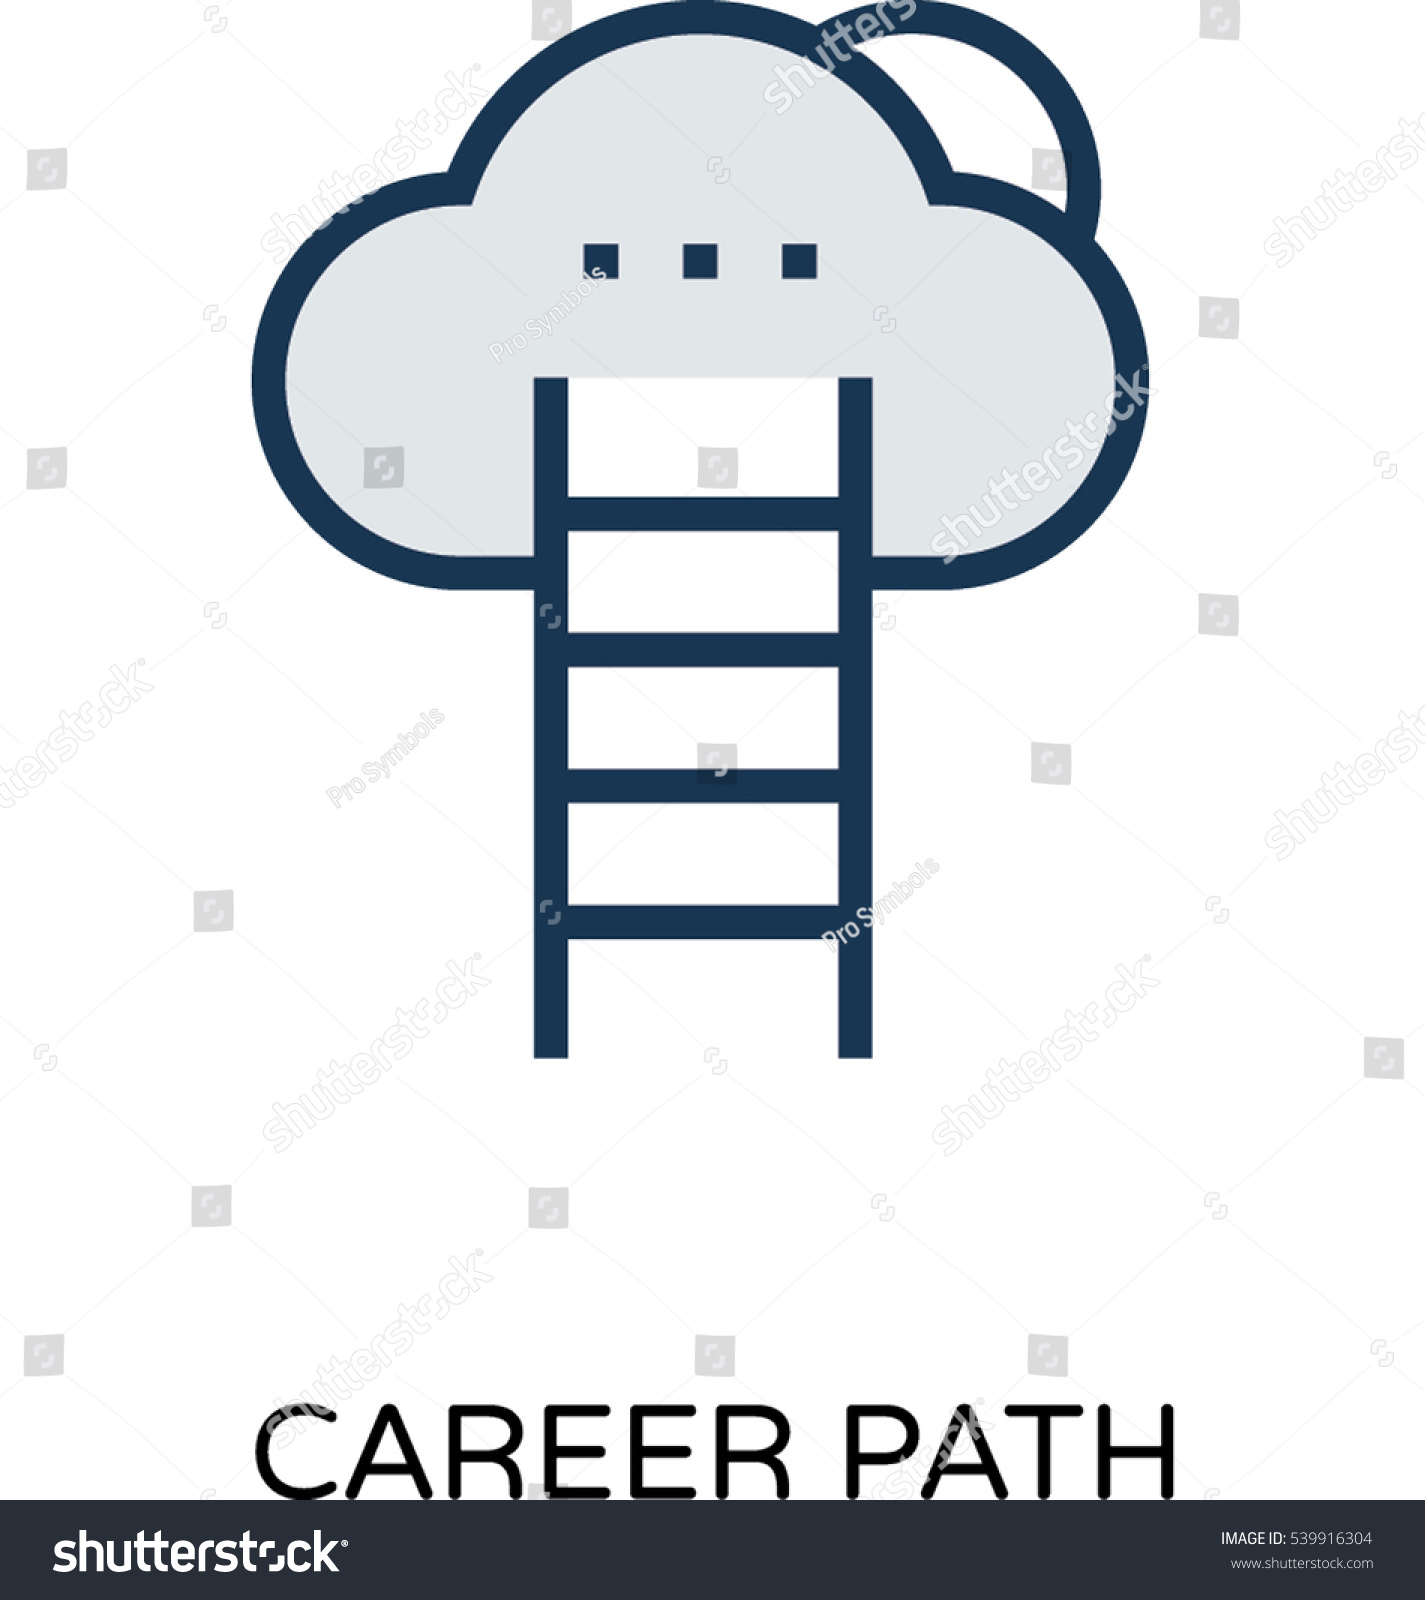 Career path icon